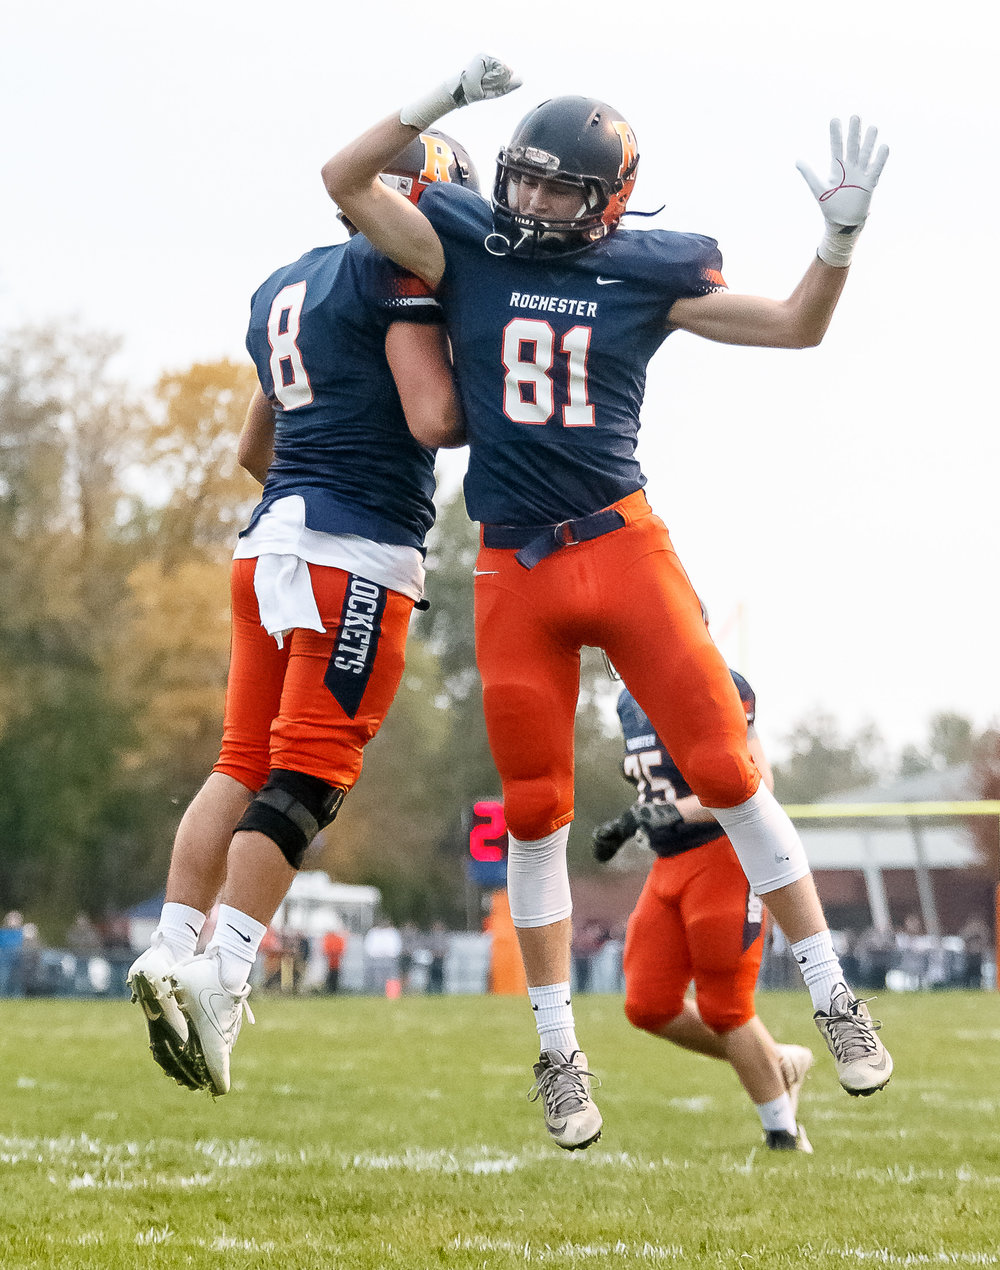 Rochester quarterback Nic Baker (8) celebrates his touchdown with Rochester's Jayden Reed (81) against Belleville Althoff in the first half during the second round of the IHSA Class 4A Playoffs at Rocket Booster Stadium, Saturday, Nov. 4, 2017, in Rochester, Ill. [Justin L. Fowler/The State Journal-Register]